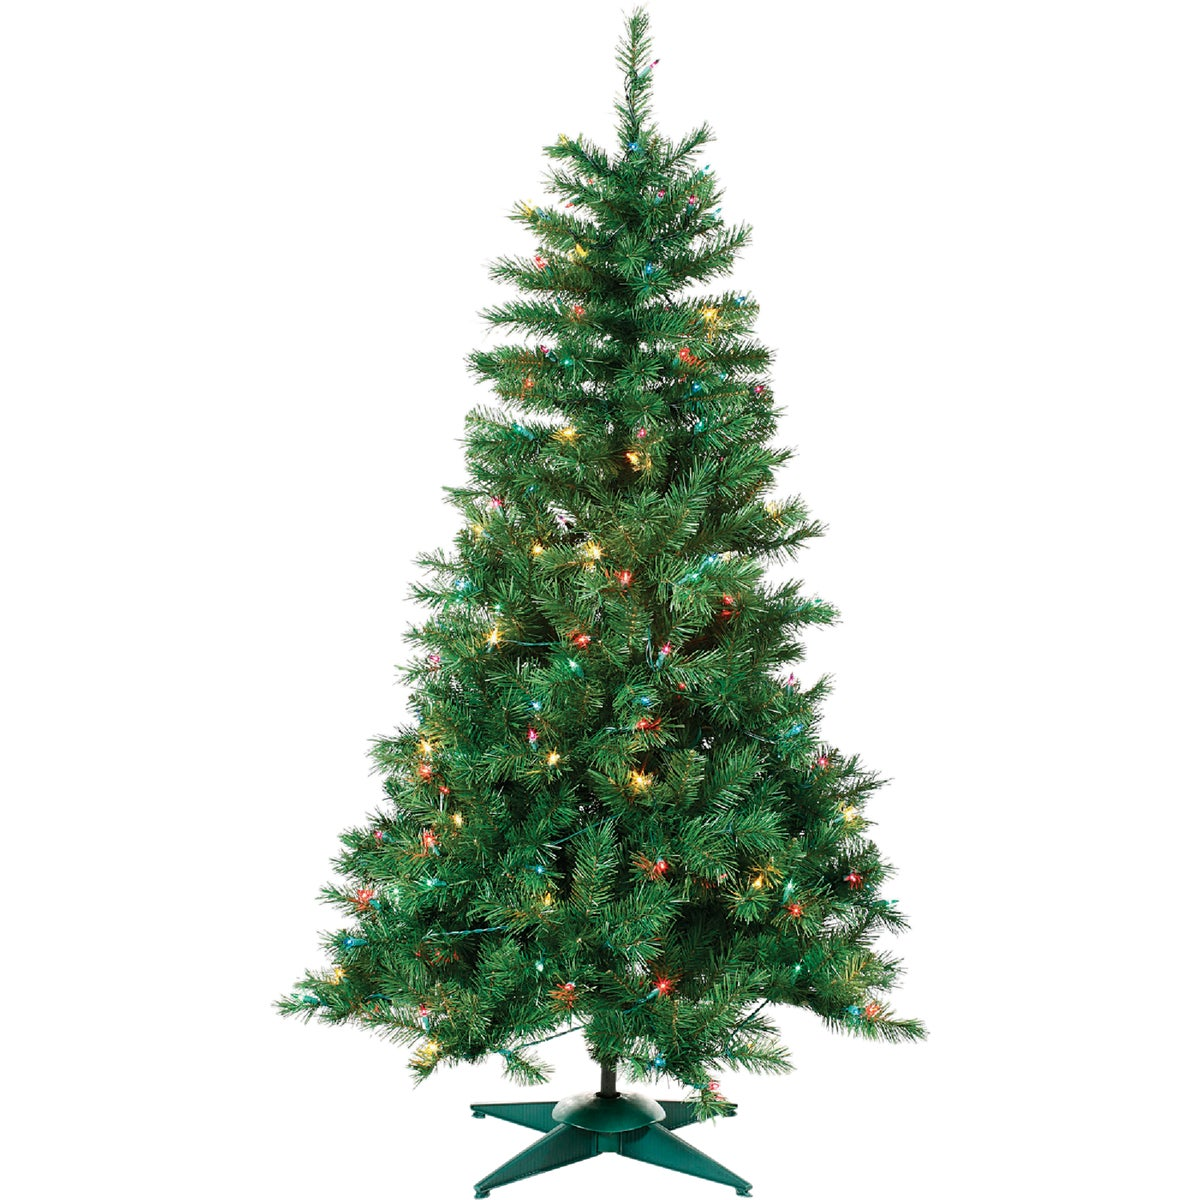 3'P/L COLRAD SPRUCE TREE - 1484-30M by Sterling